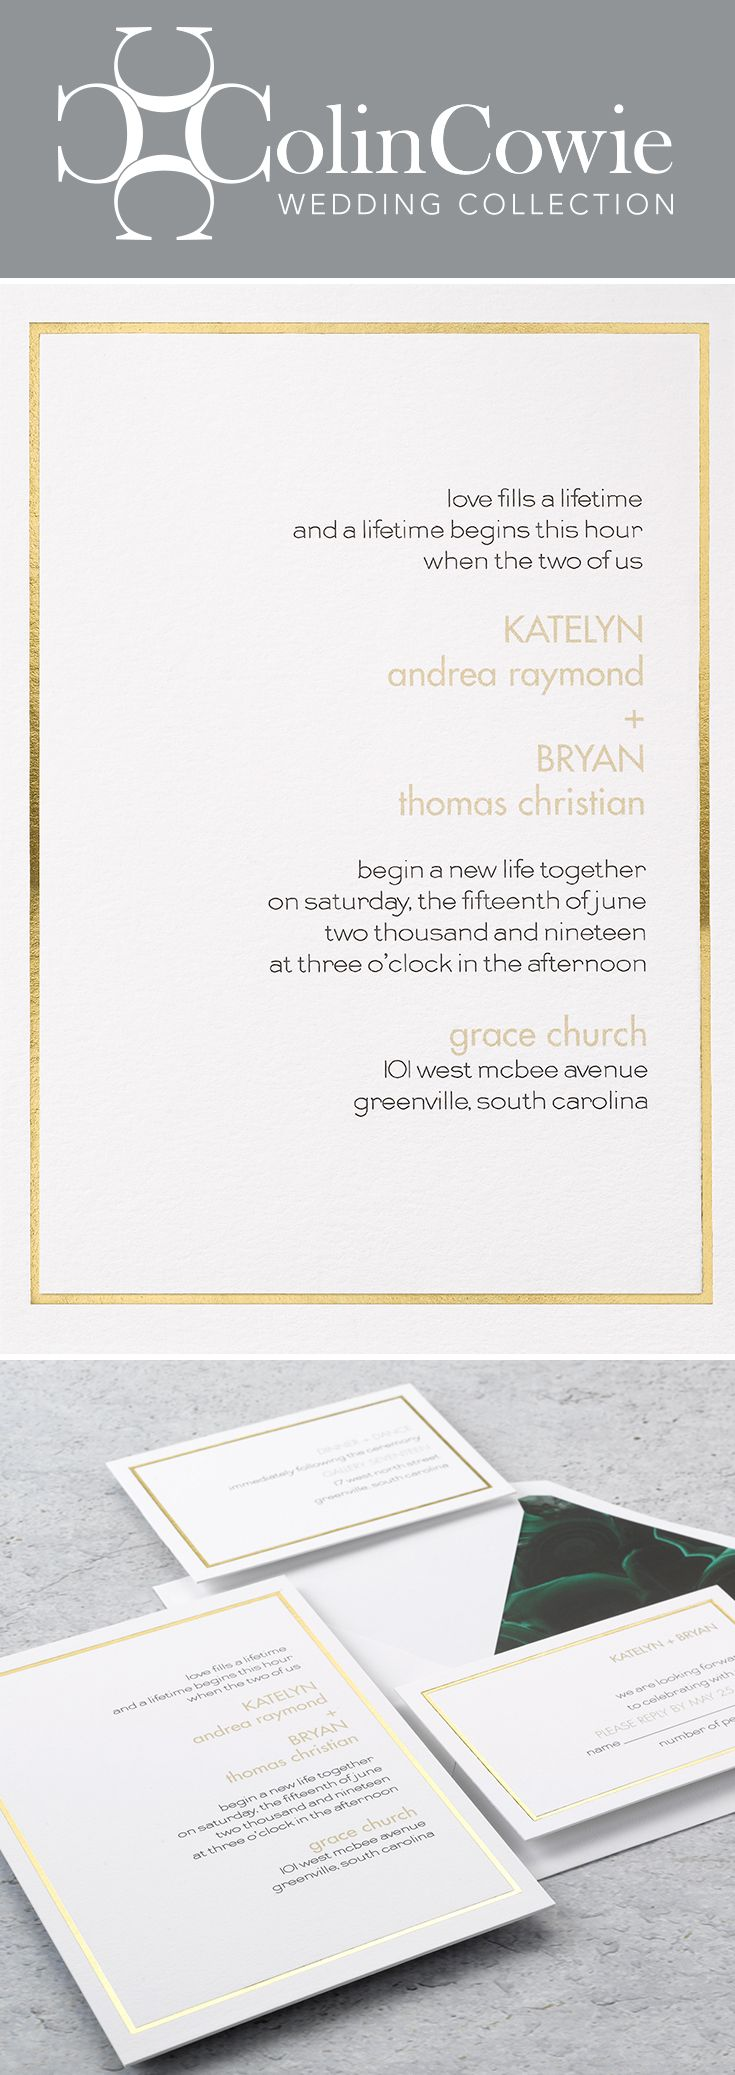 Gold lining invitation contemporary style wedding and wedding